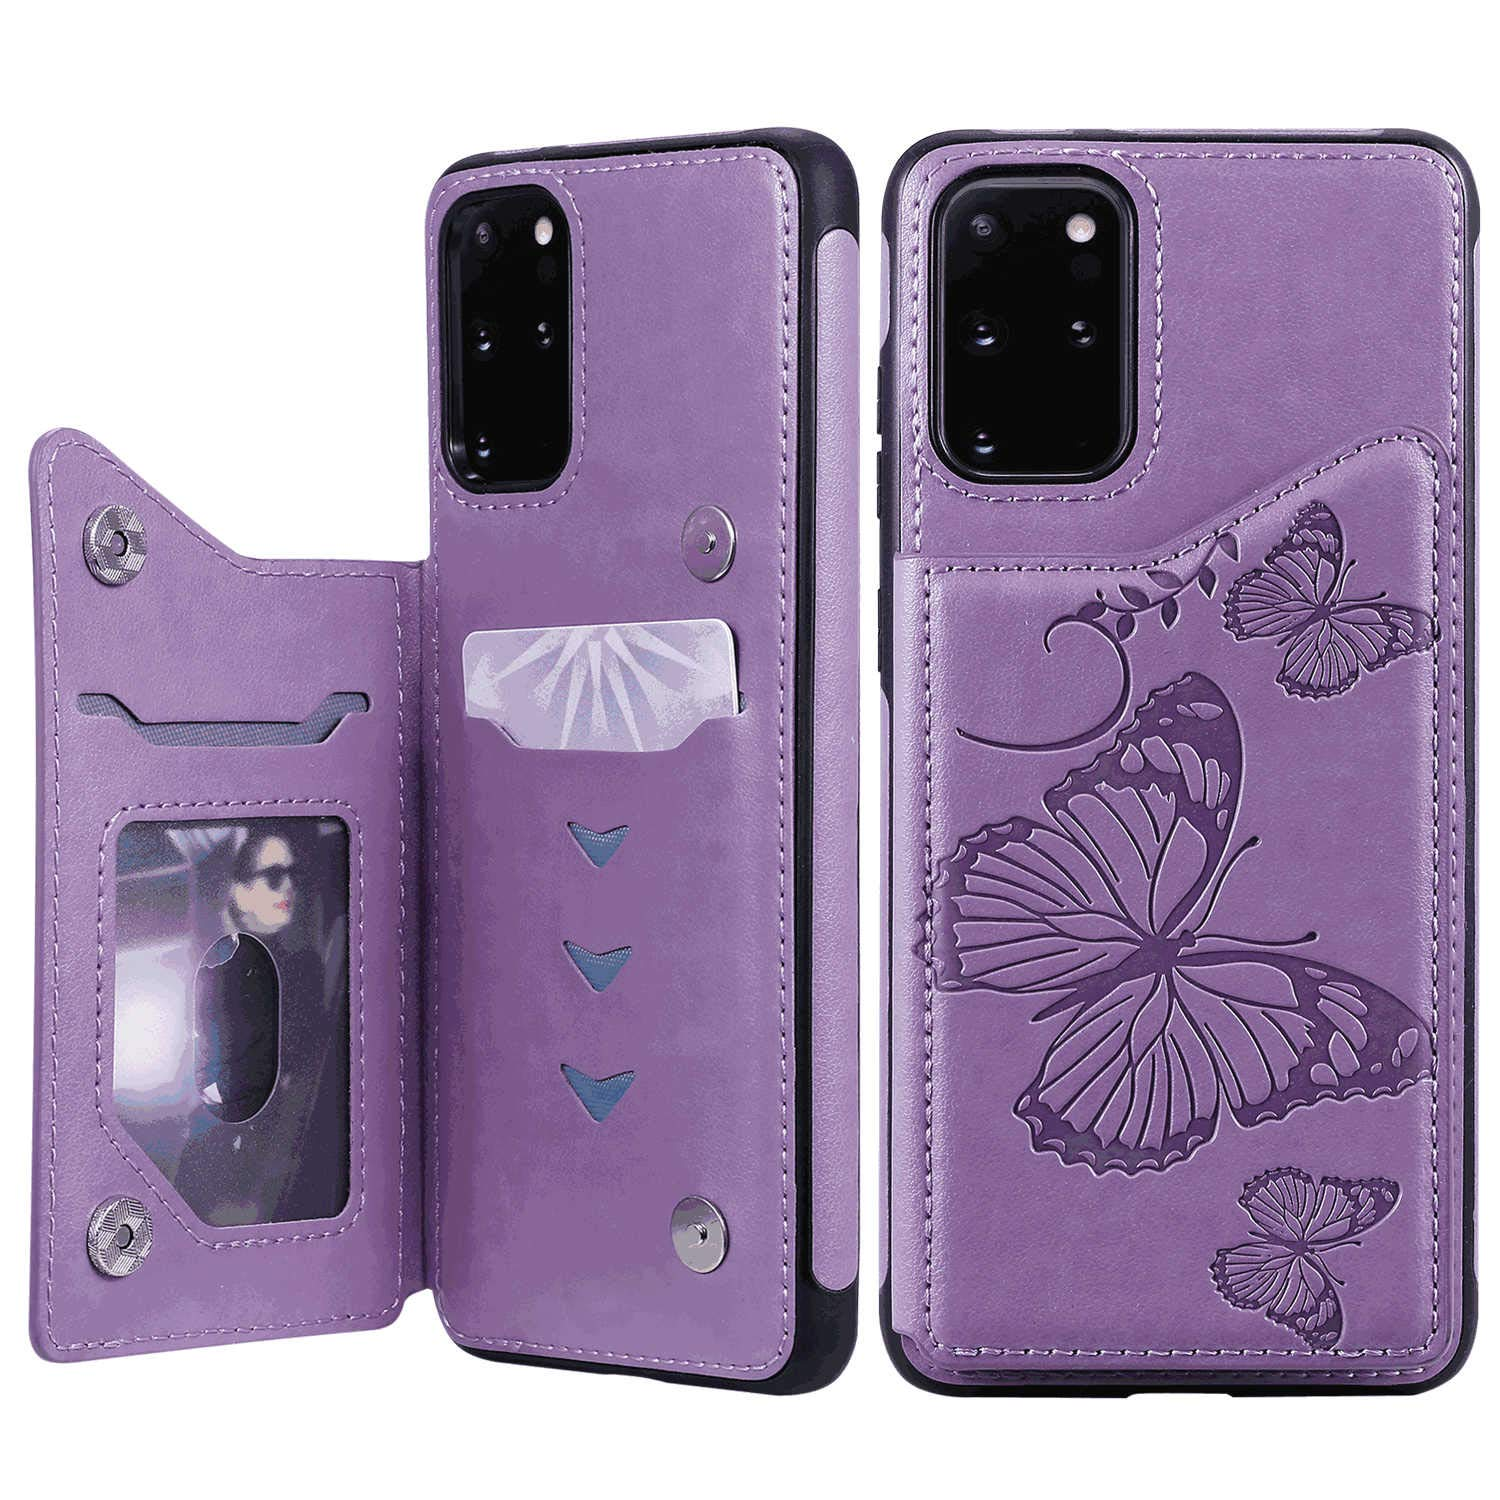 Leather Flip Case Fit for iPhone XR, Extra-Shockproof Kickstand Card Holders Wallet Cover for iPhone XR